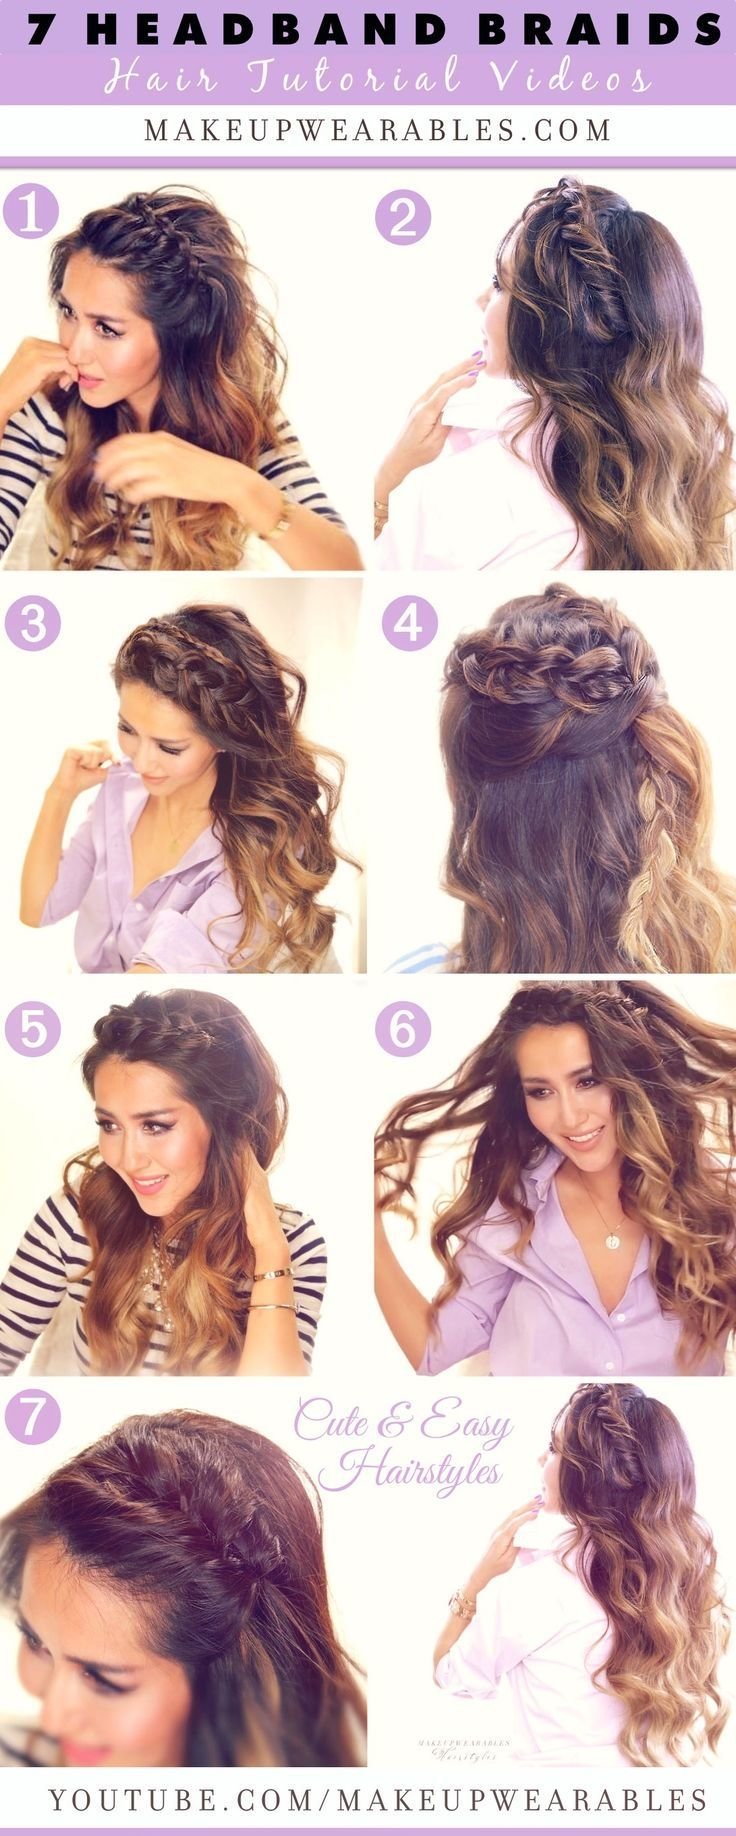 Free 7 Cute Easy Headband Braid Hairstyles To Try In 2015 Wallpaper